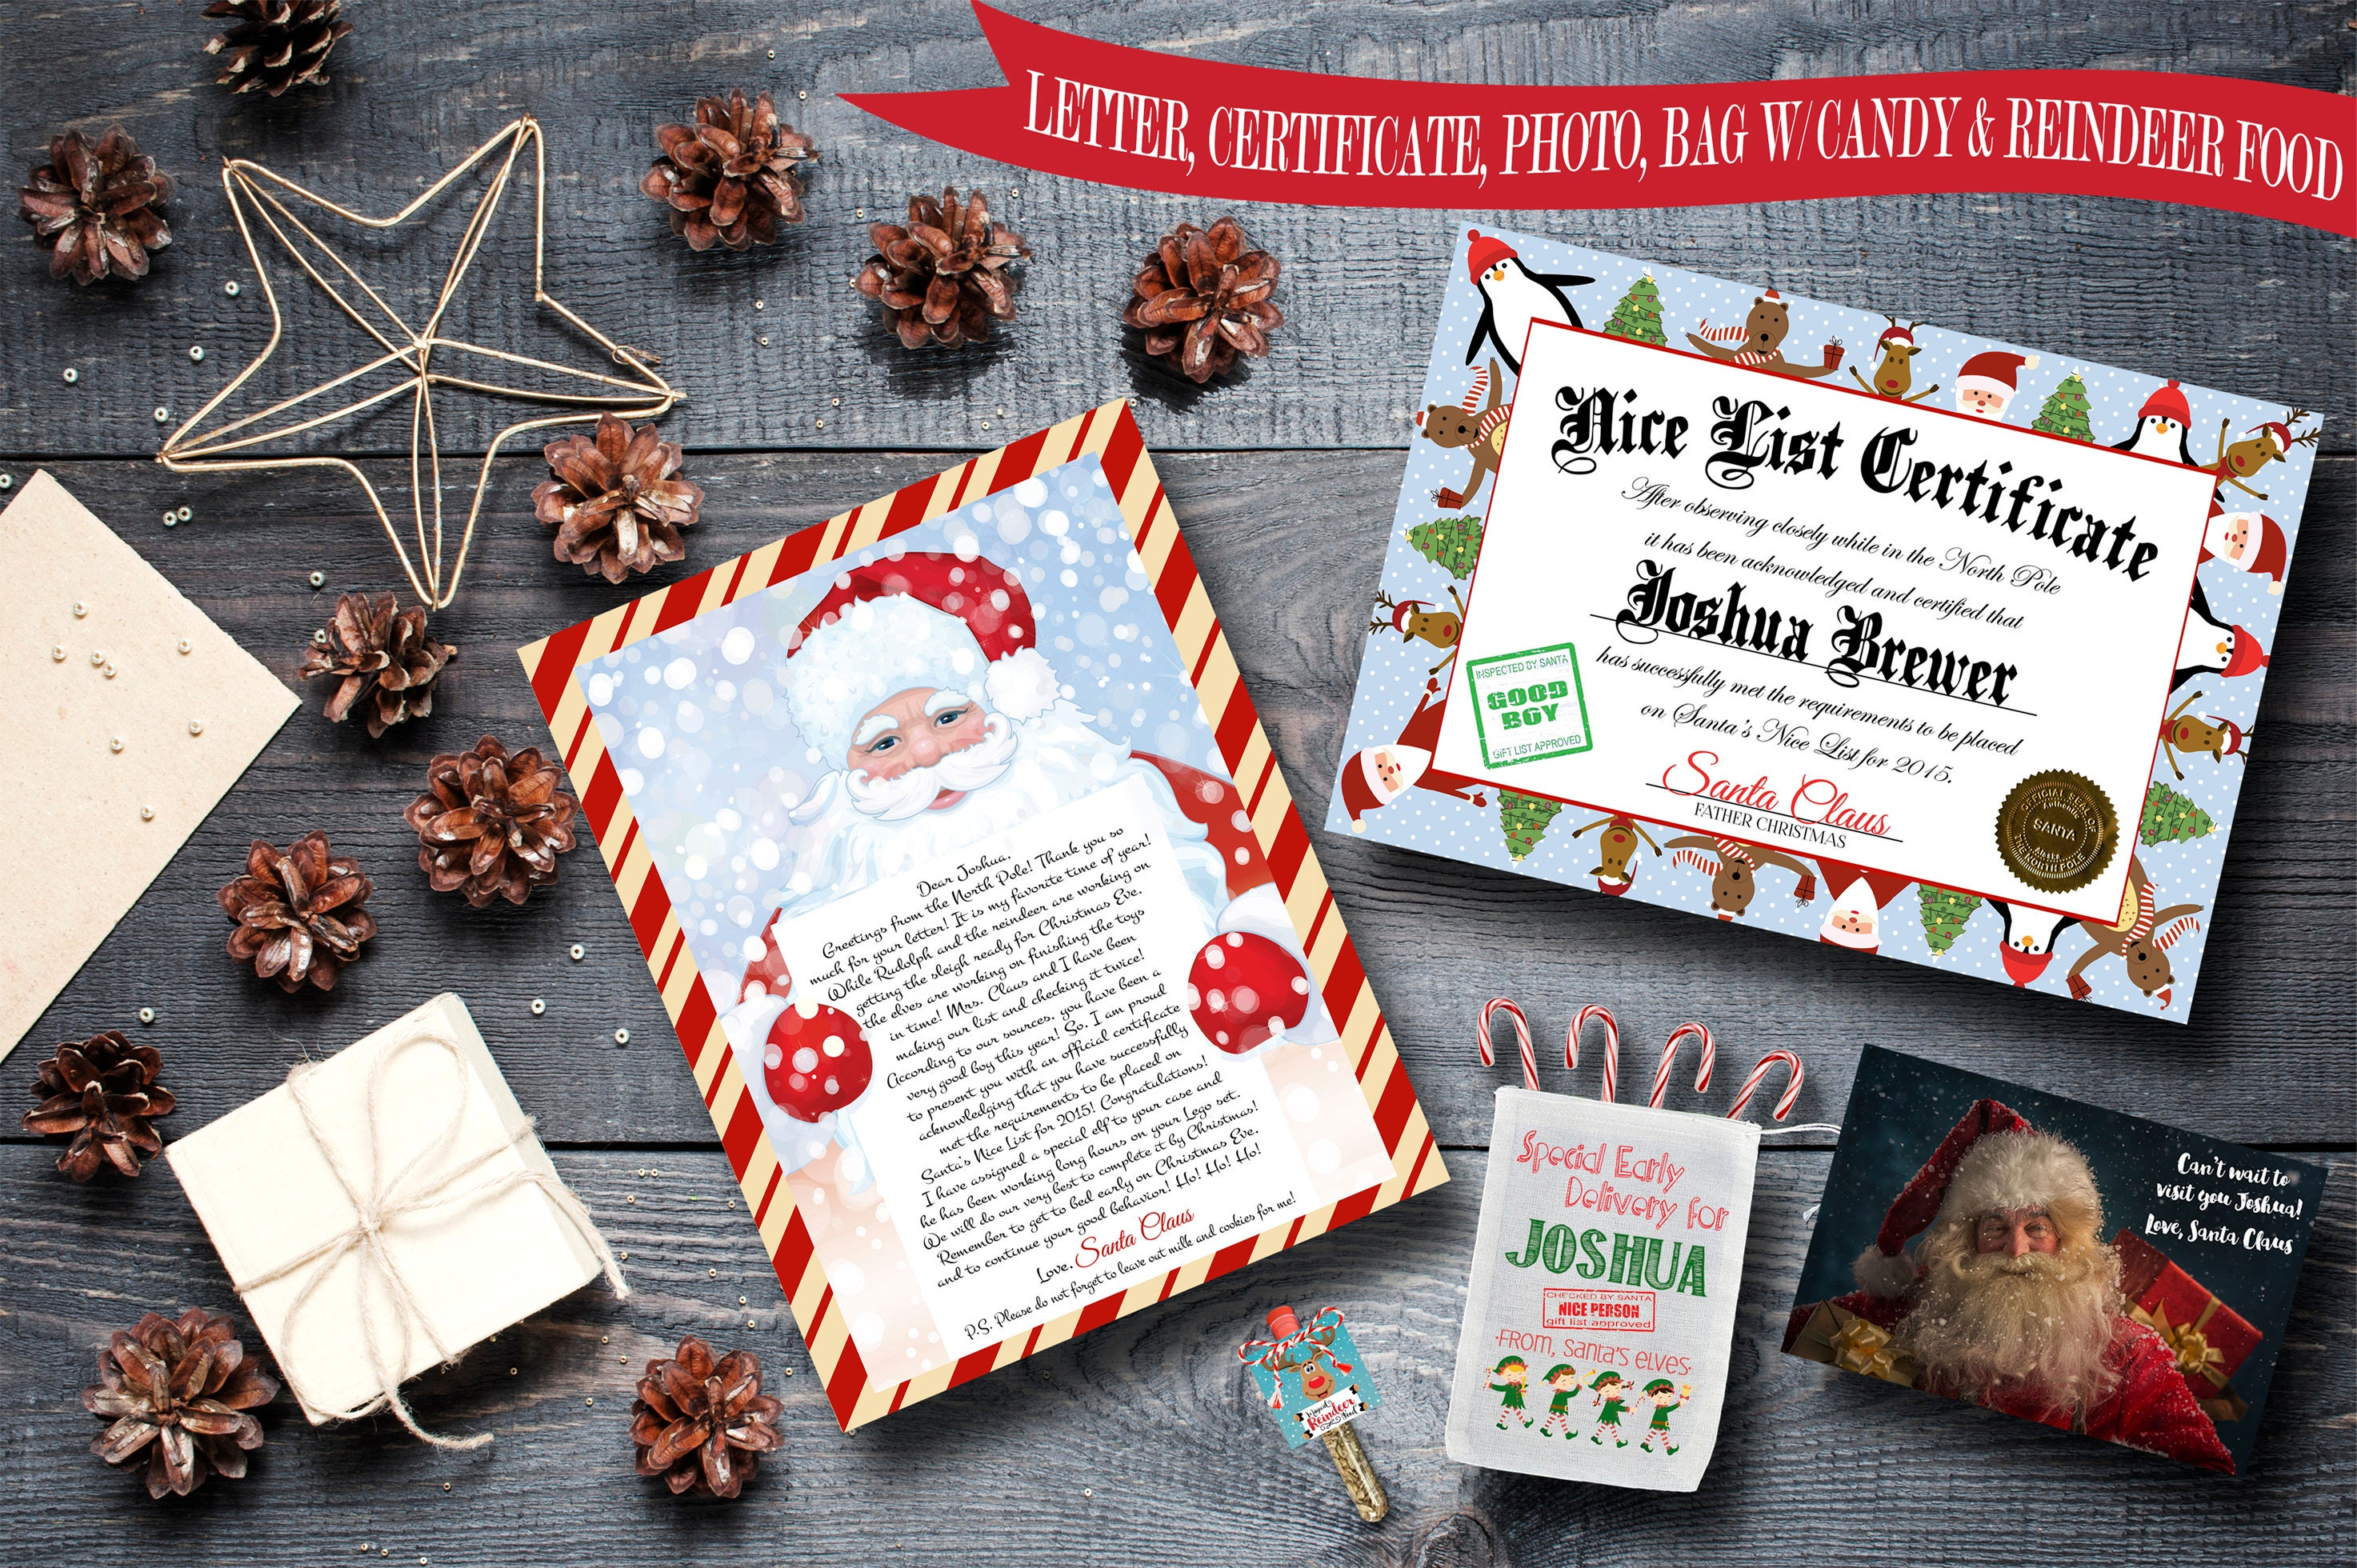 Christmas package from santa claus letter from santa nice list christmas package from santa claus letter from santa nice list certificate elf gift spiritdancerdesigns